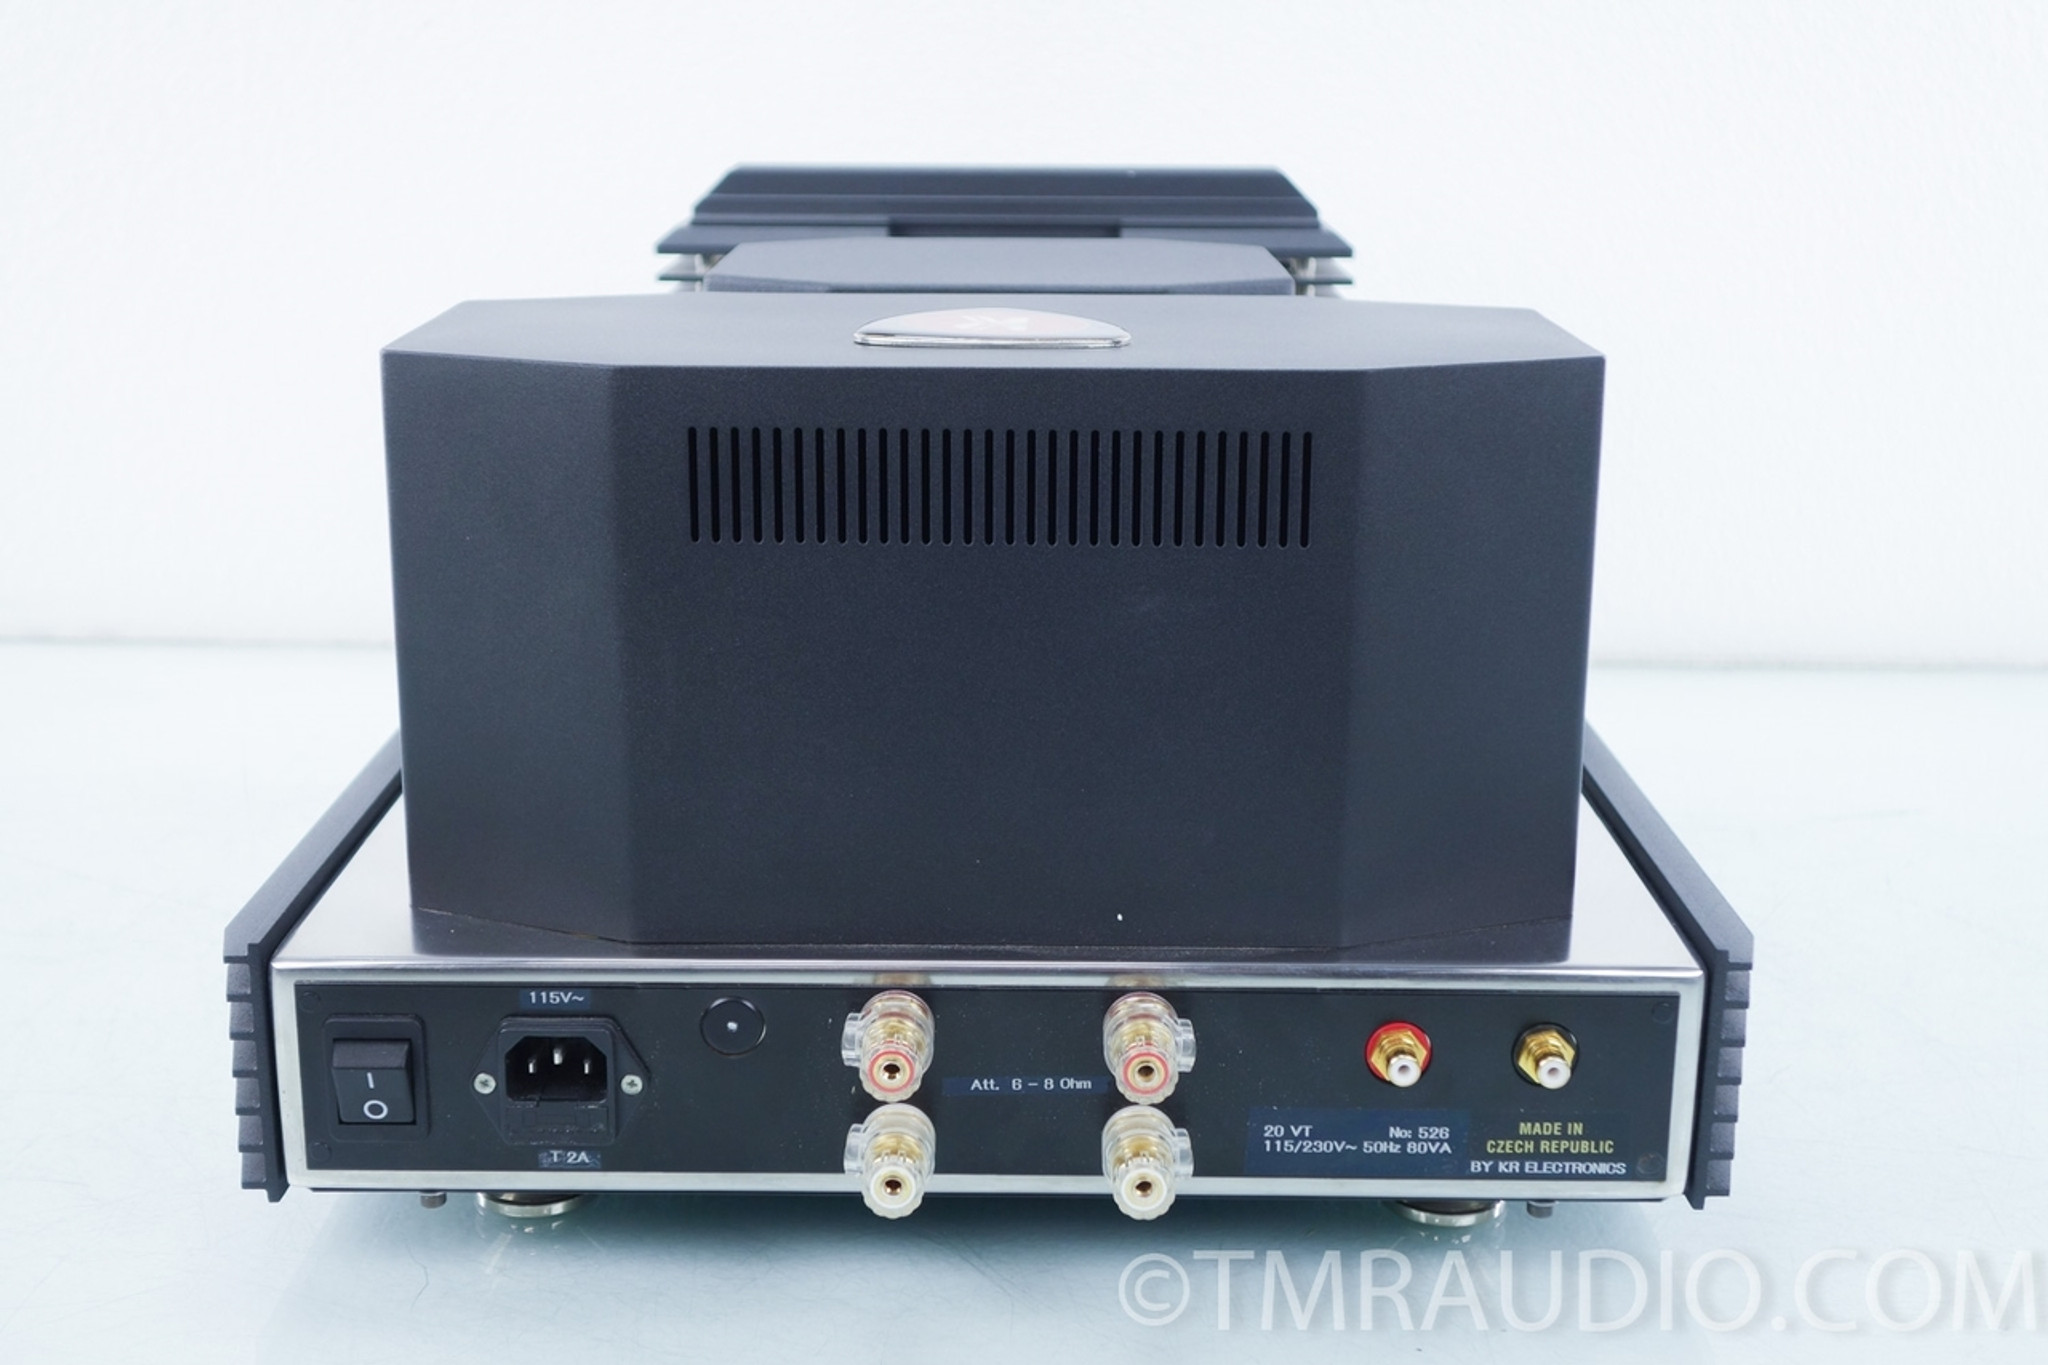 Kr Audio Vt 20 Tube Transistor Amplifier The Music Room Amplifiers